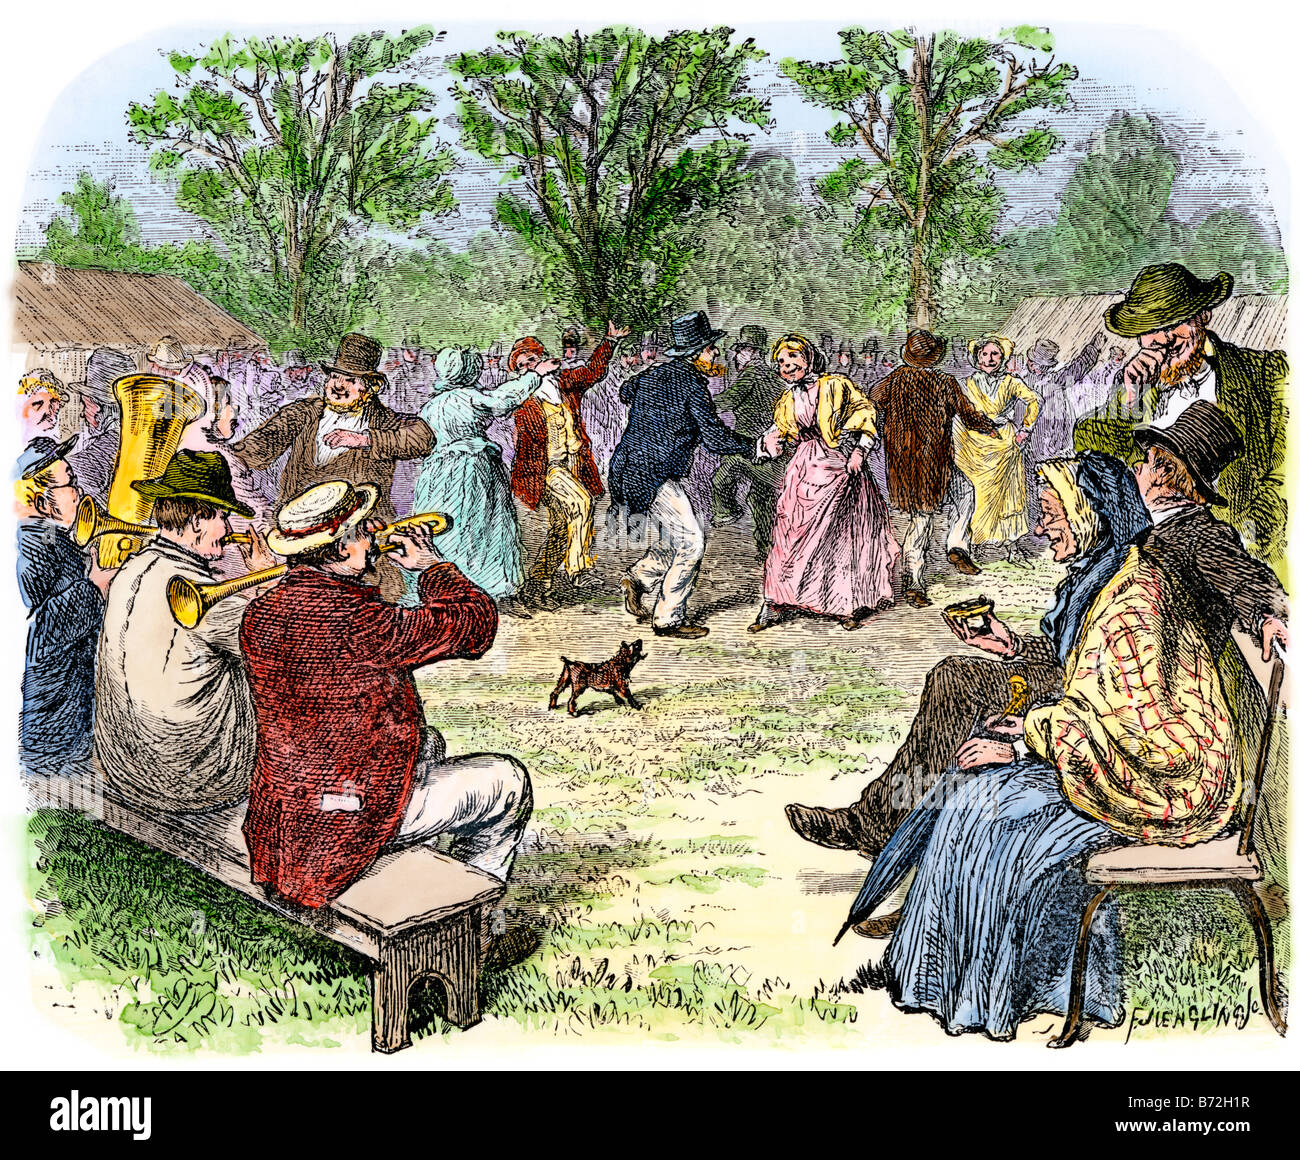 Country people enjoying an outdoor gathering, dancing to a makeshift band 1800s. Hand-colored woodcut - Stock Image